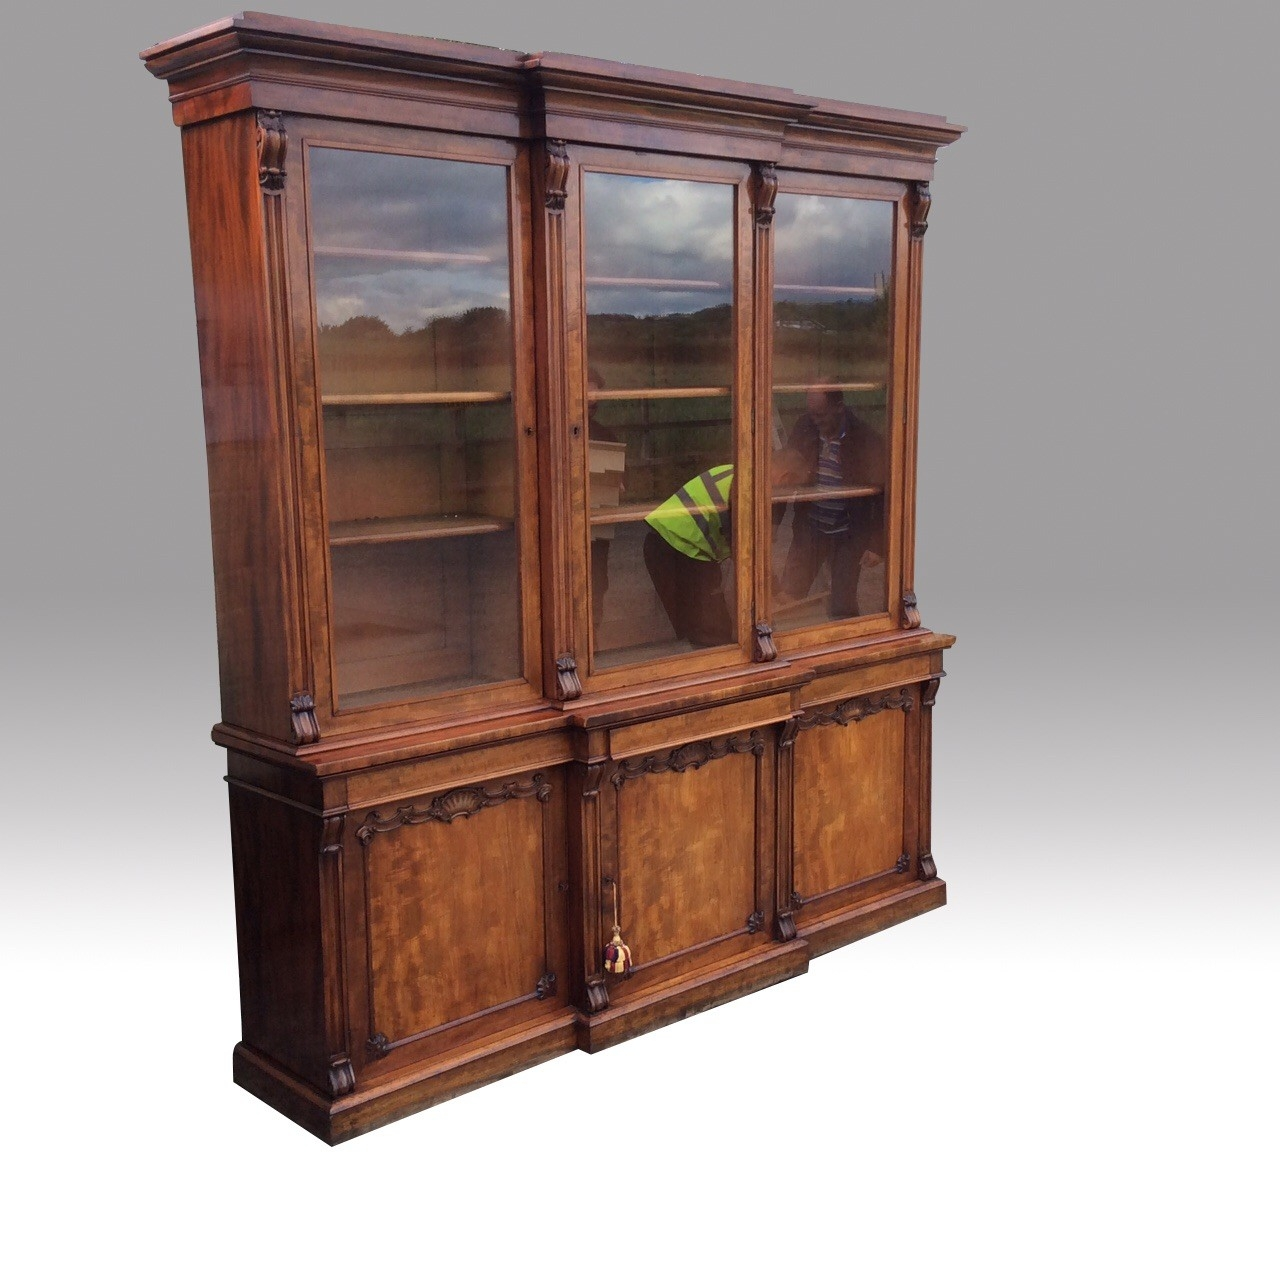 Very Fine Quality Antique Mahogany Three Door Library Breakfront Intended For Breakfront Bookcase (View 11 of 15)